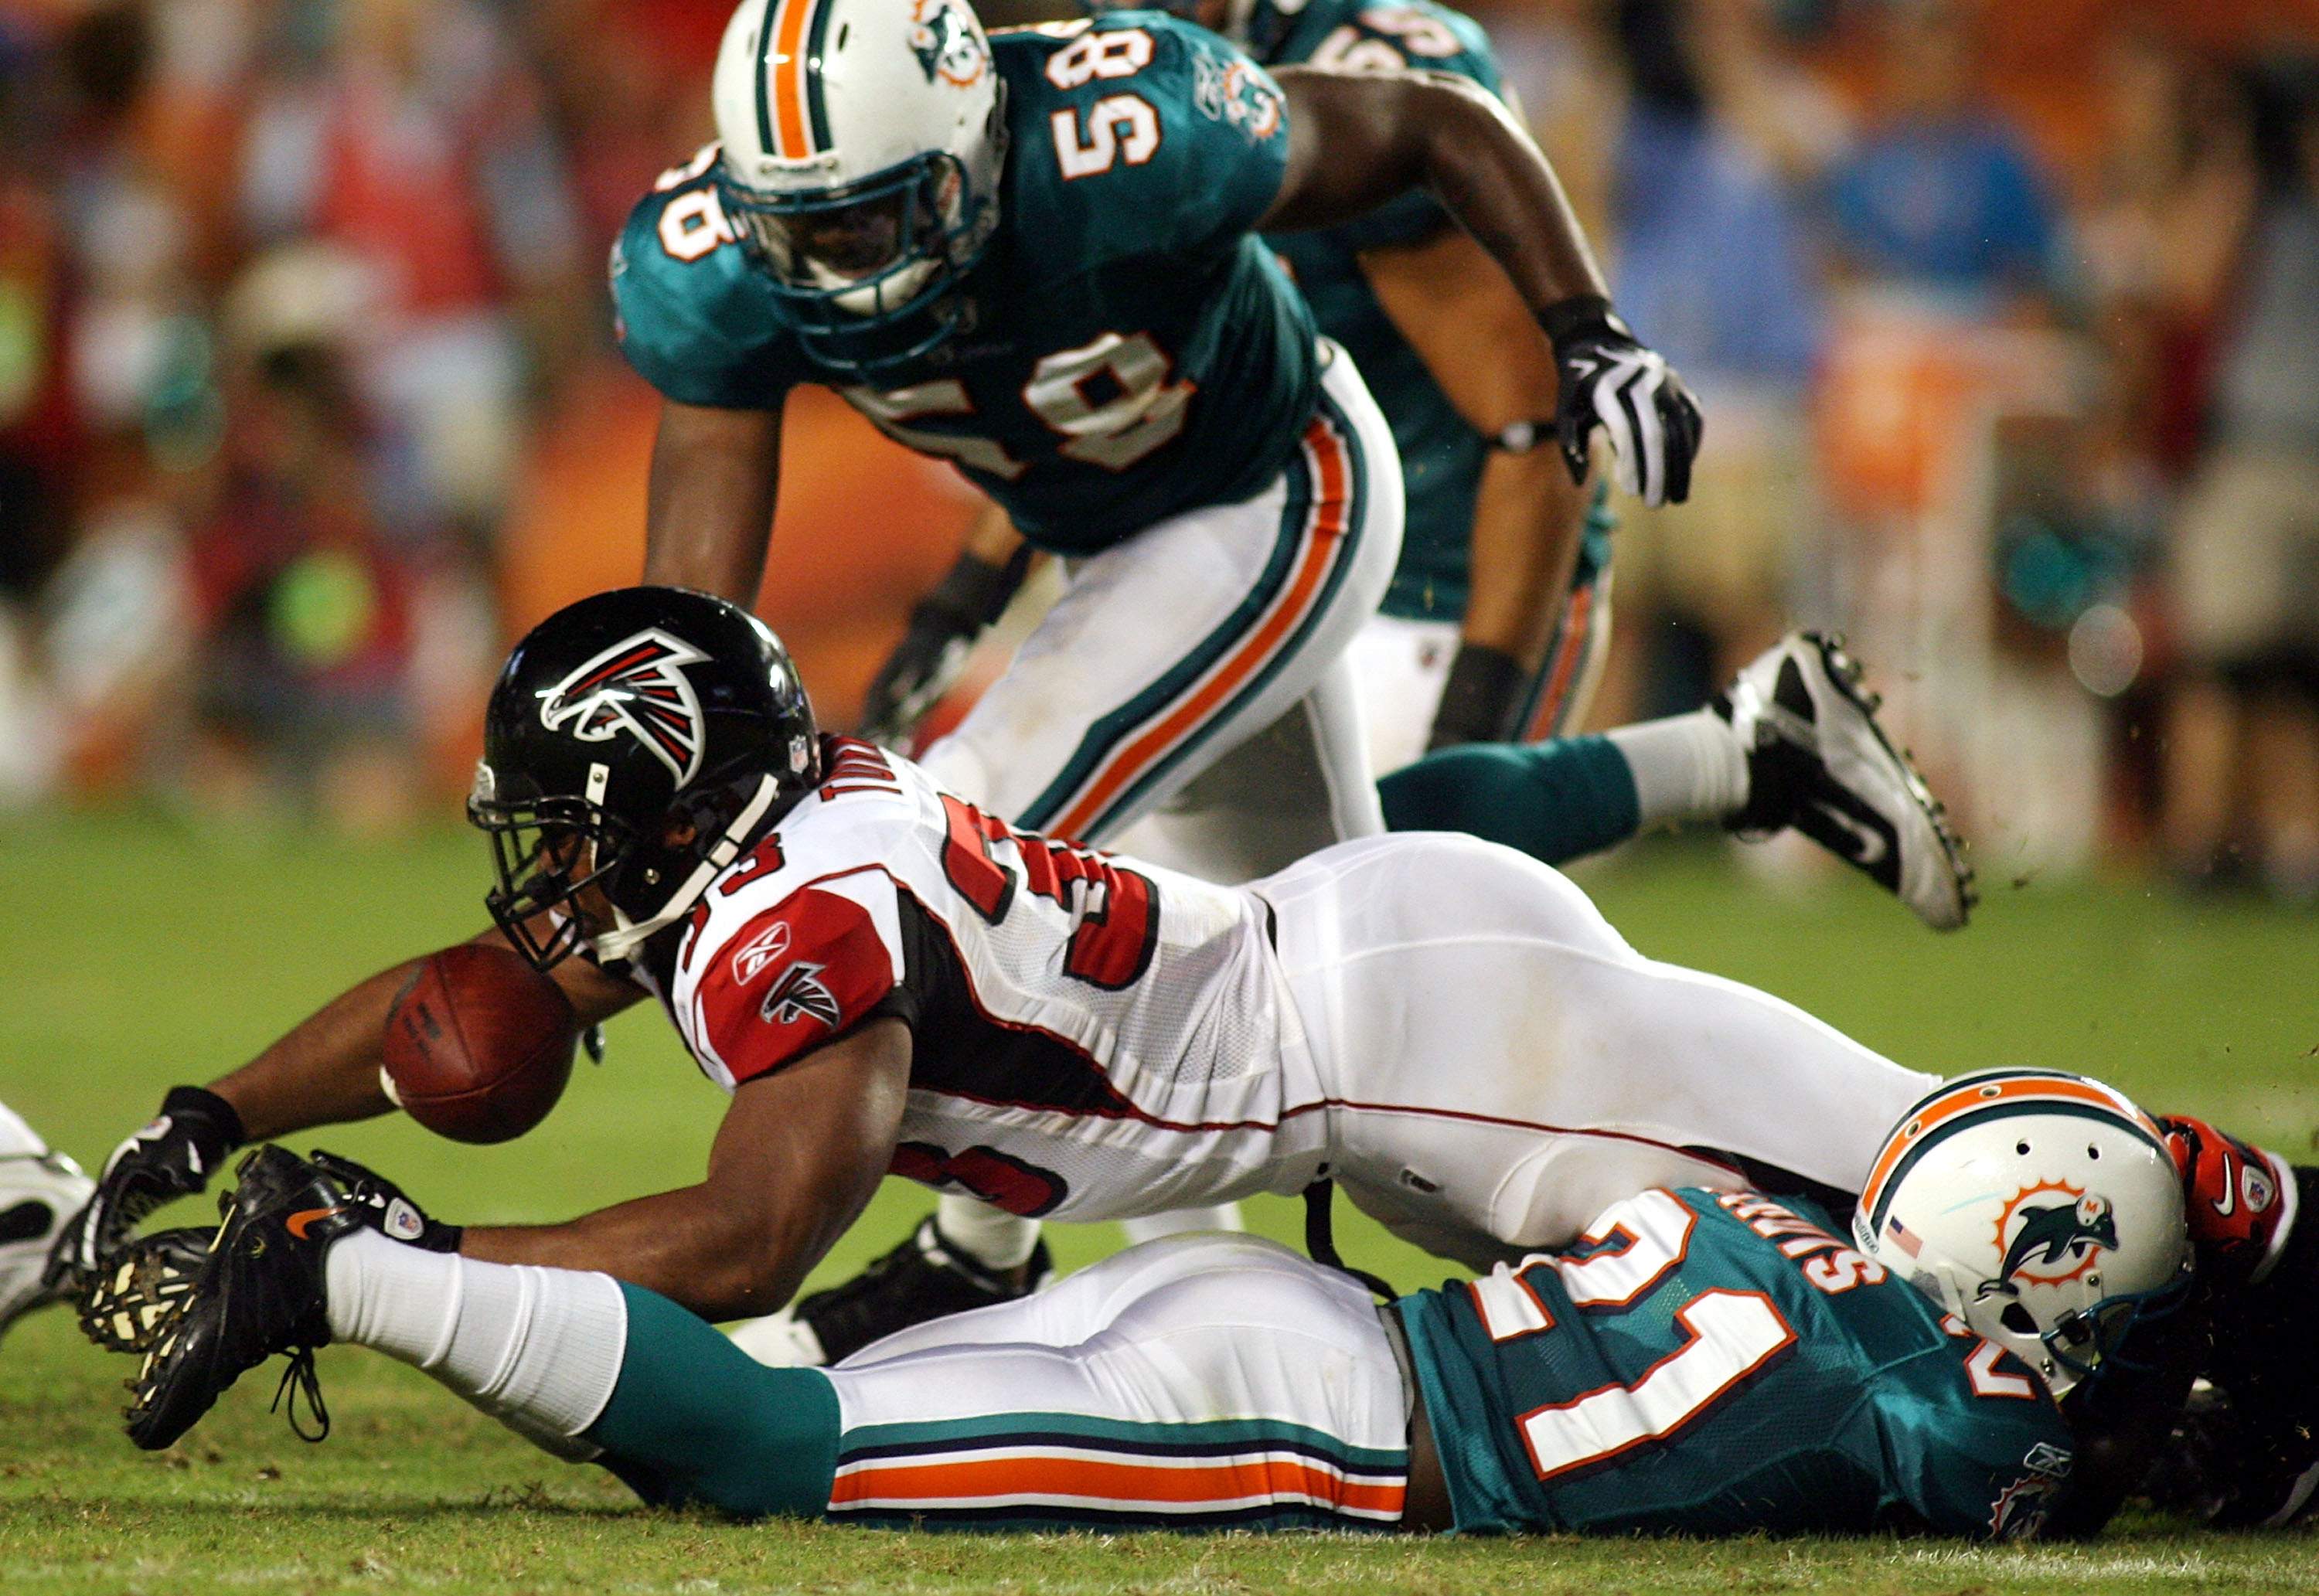 MIAMI - AUGUST 27: Running back Michael Turner #33 of the Atlanta Falcons fumbles against the Miami Dolphins during their preseason game at Sun Life Stadium on August 27, 2010 in Miami, Florida.  (Photo by Marc Serota/Getty Images)